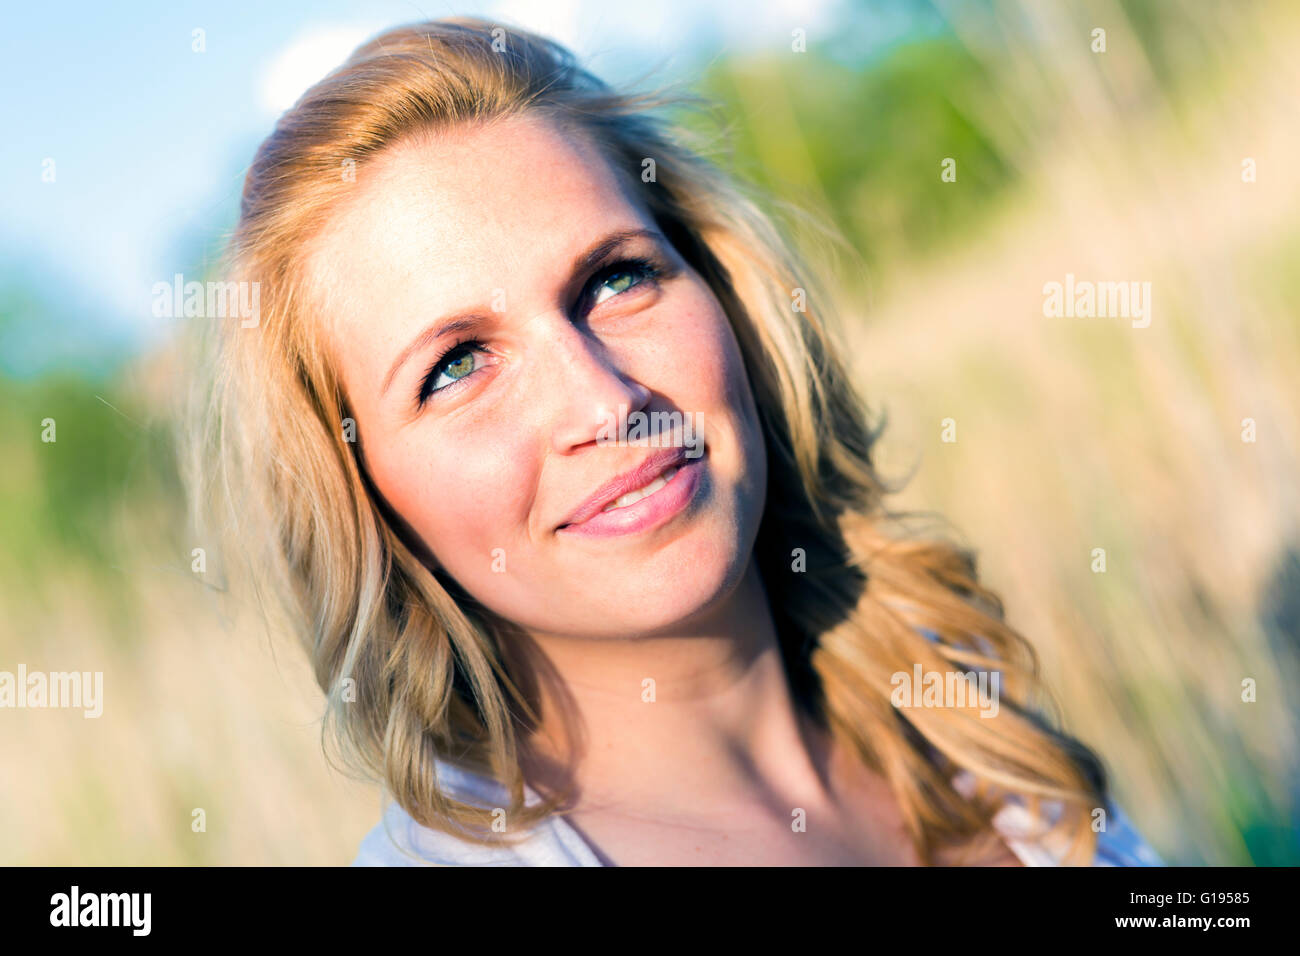 Portrait of a beautiful smiling woman in nature / outdoors - Stock Image